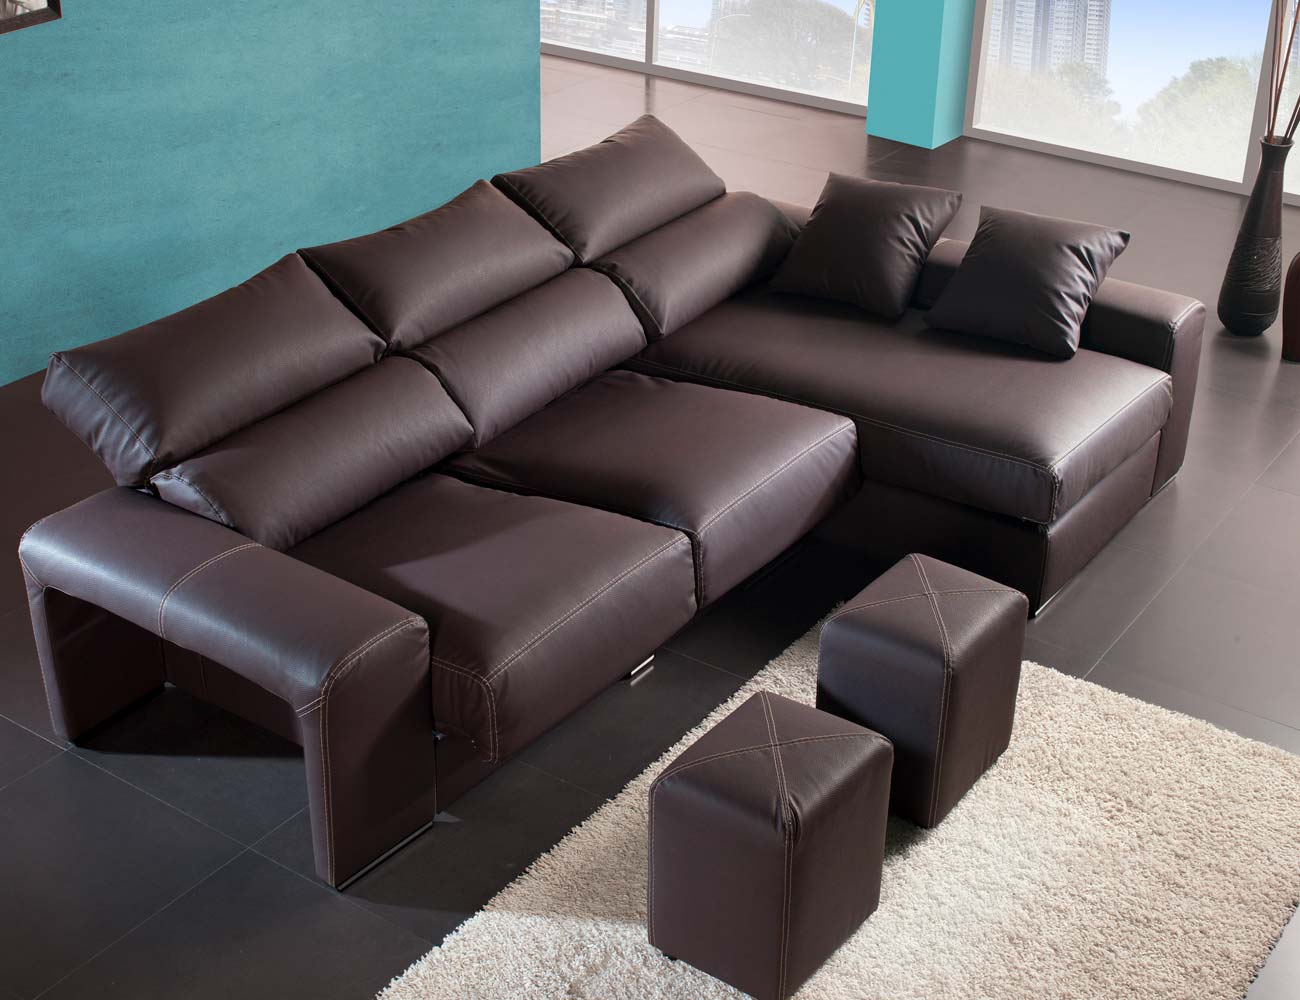 Sofa chaiselongue moderno polipiel chocolate poufs taburetes46